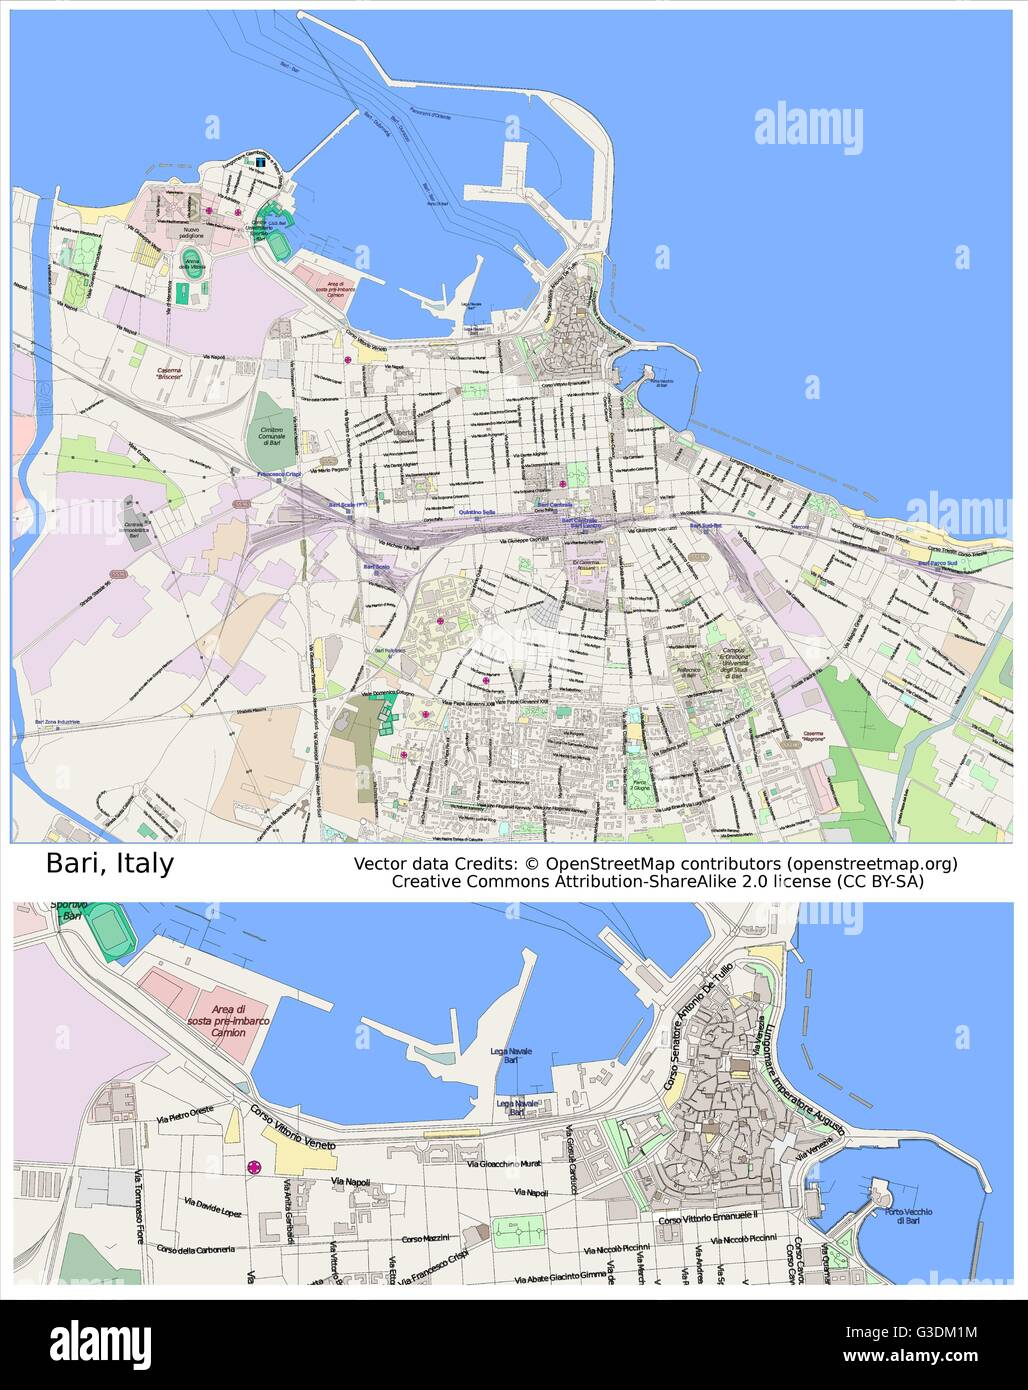 Bari Italy city map Stock Vector Art Illustration Vector Image